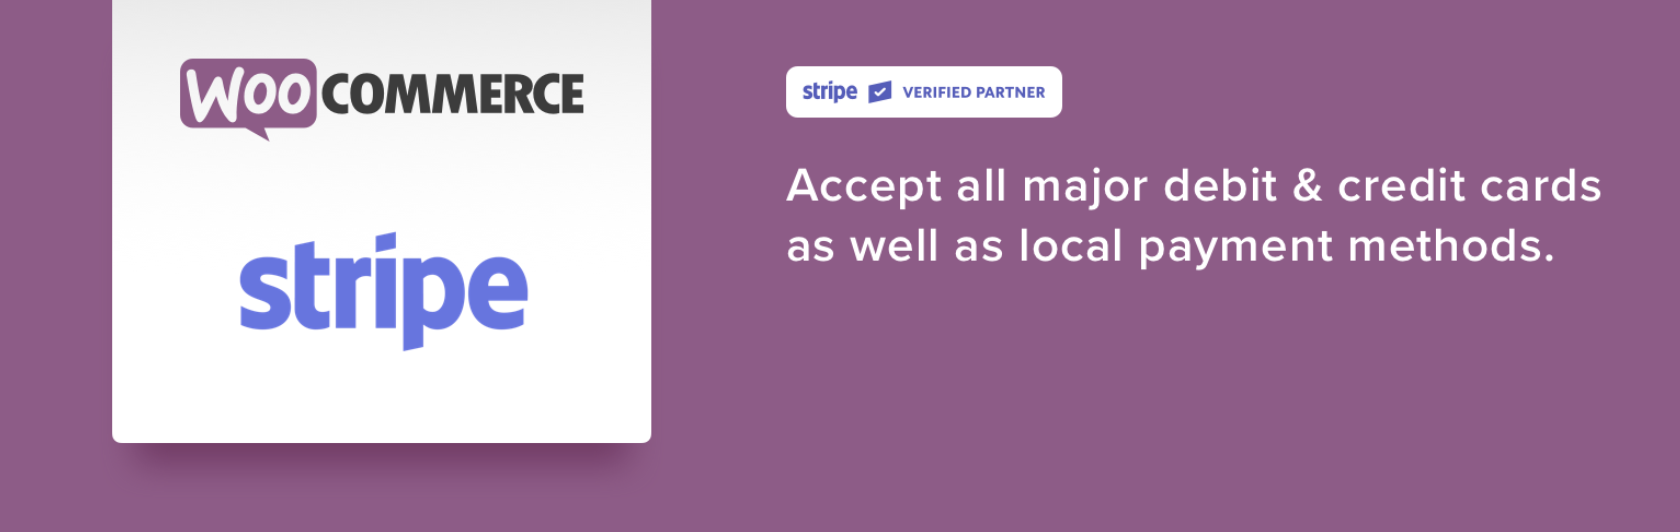 stripe for woocommerce banner